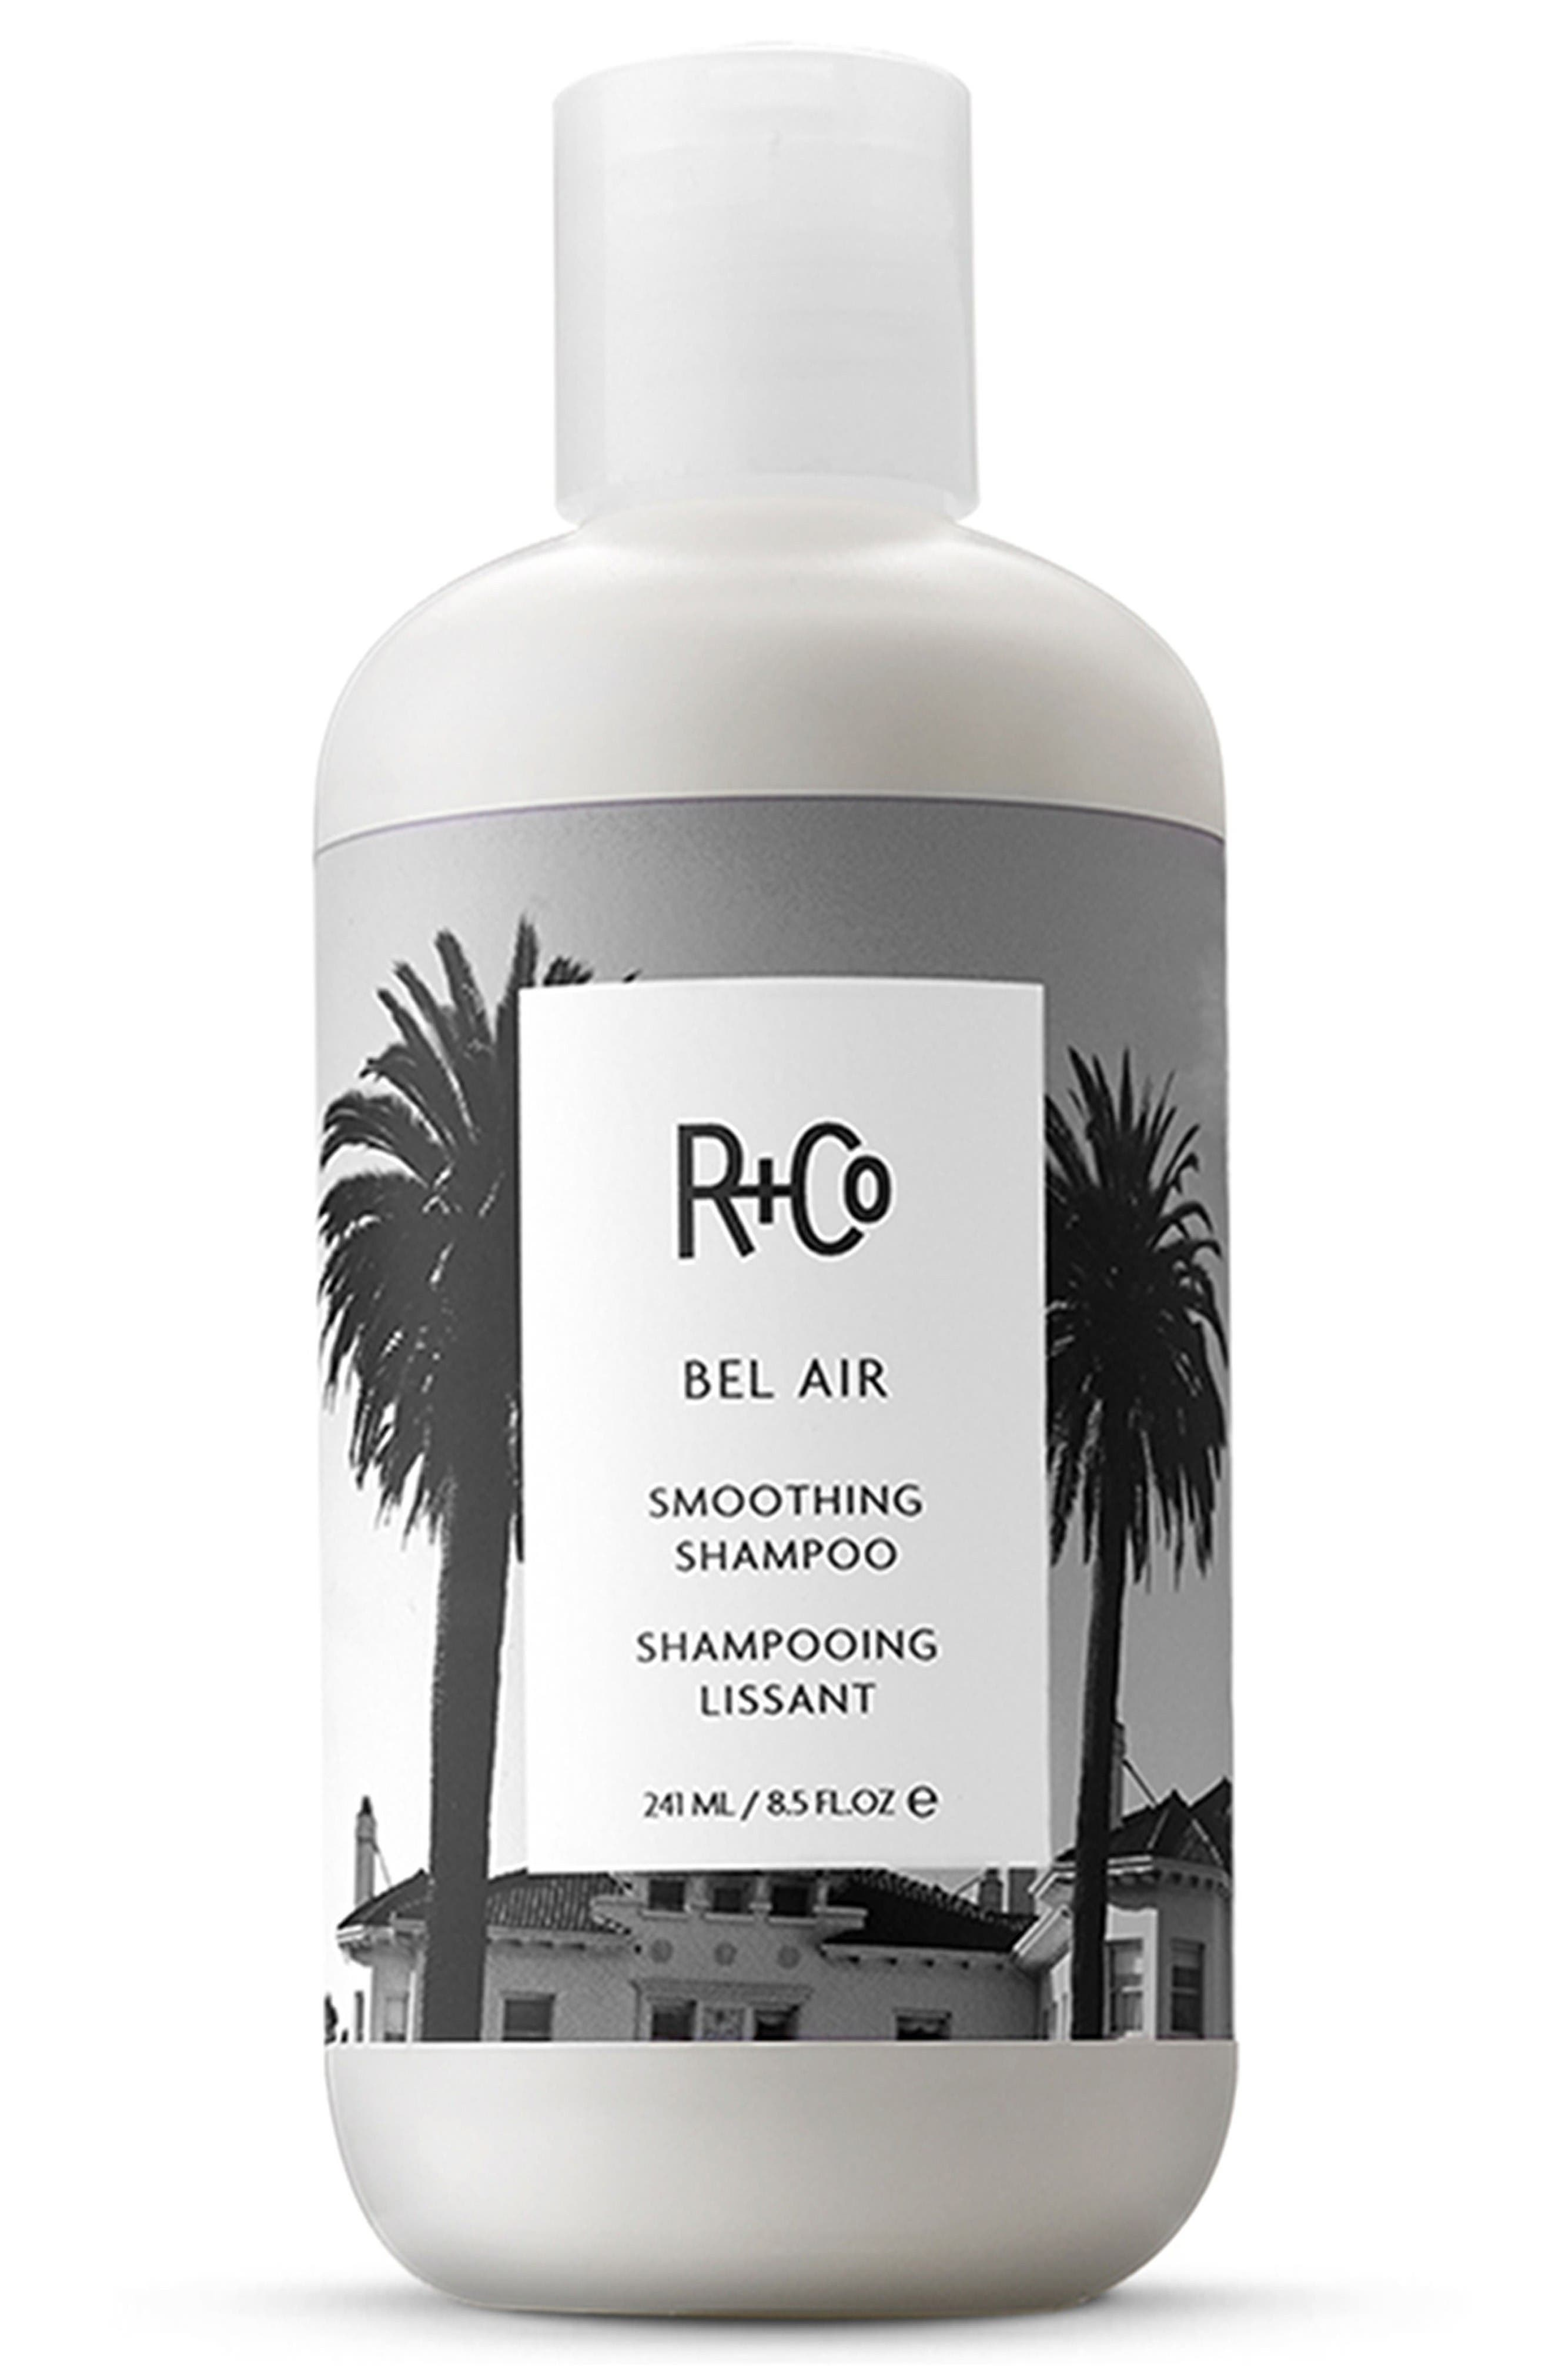 Main Image - SPACE.NK.apothecary R+Co Bel Air Smoothing Shampoo